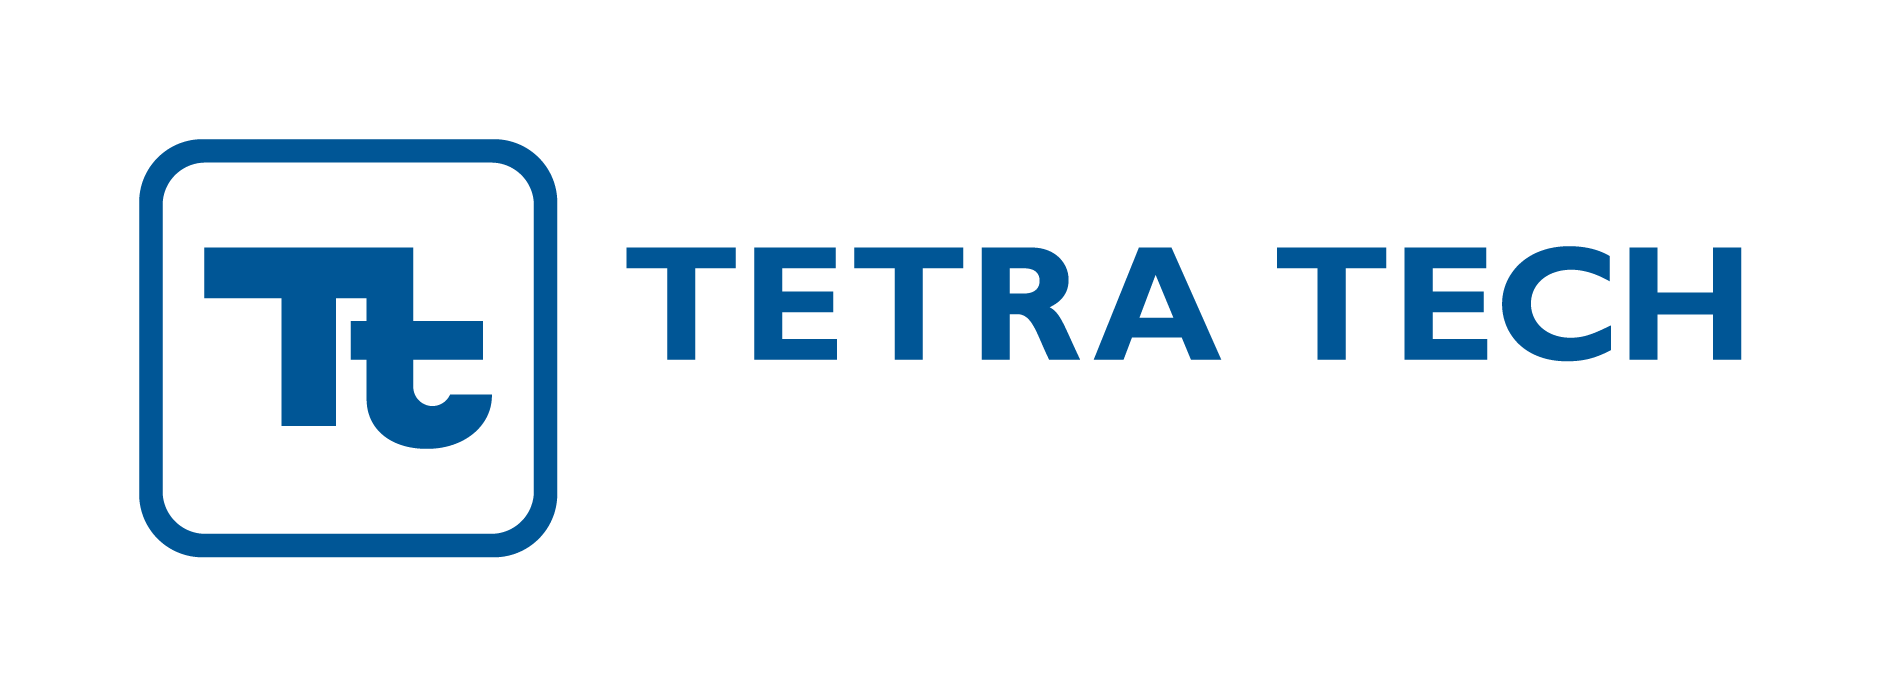 File Tetra Tech Logo Png Wikimedia Commons